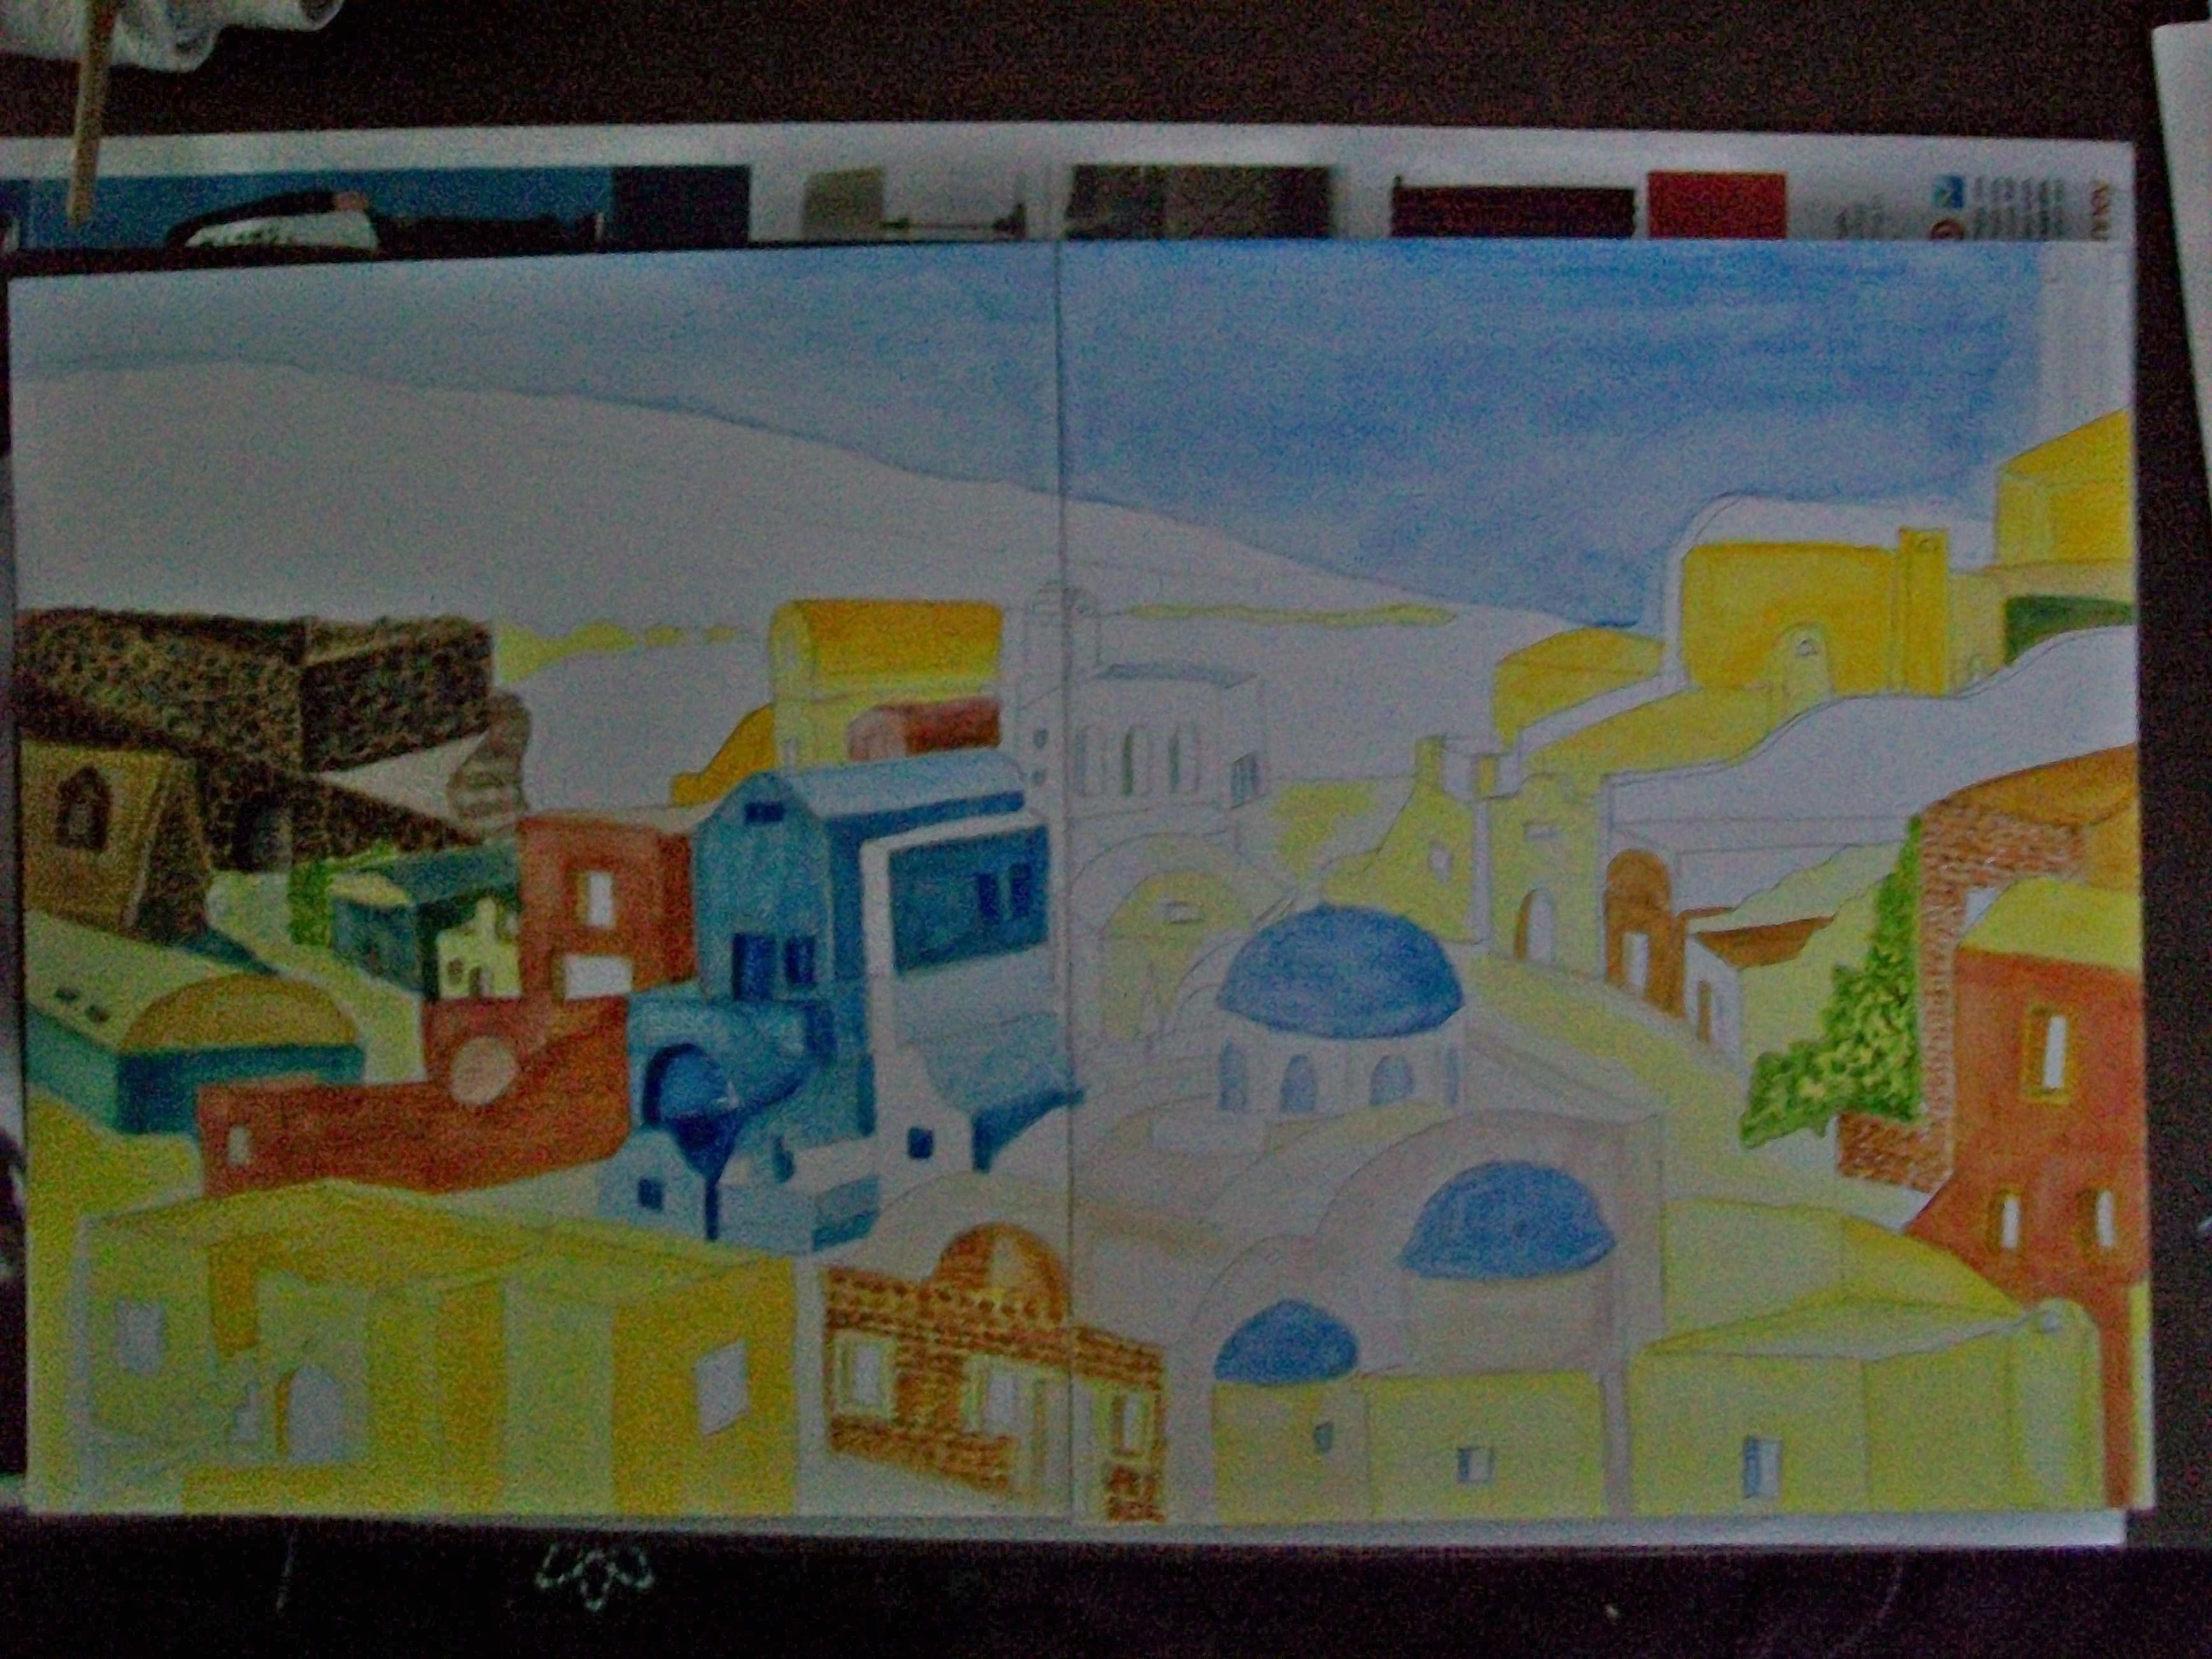 Here is one stage of development after hours of testing colors, washes to get desired hues.